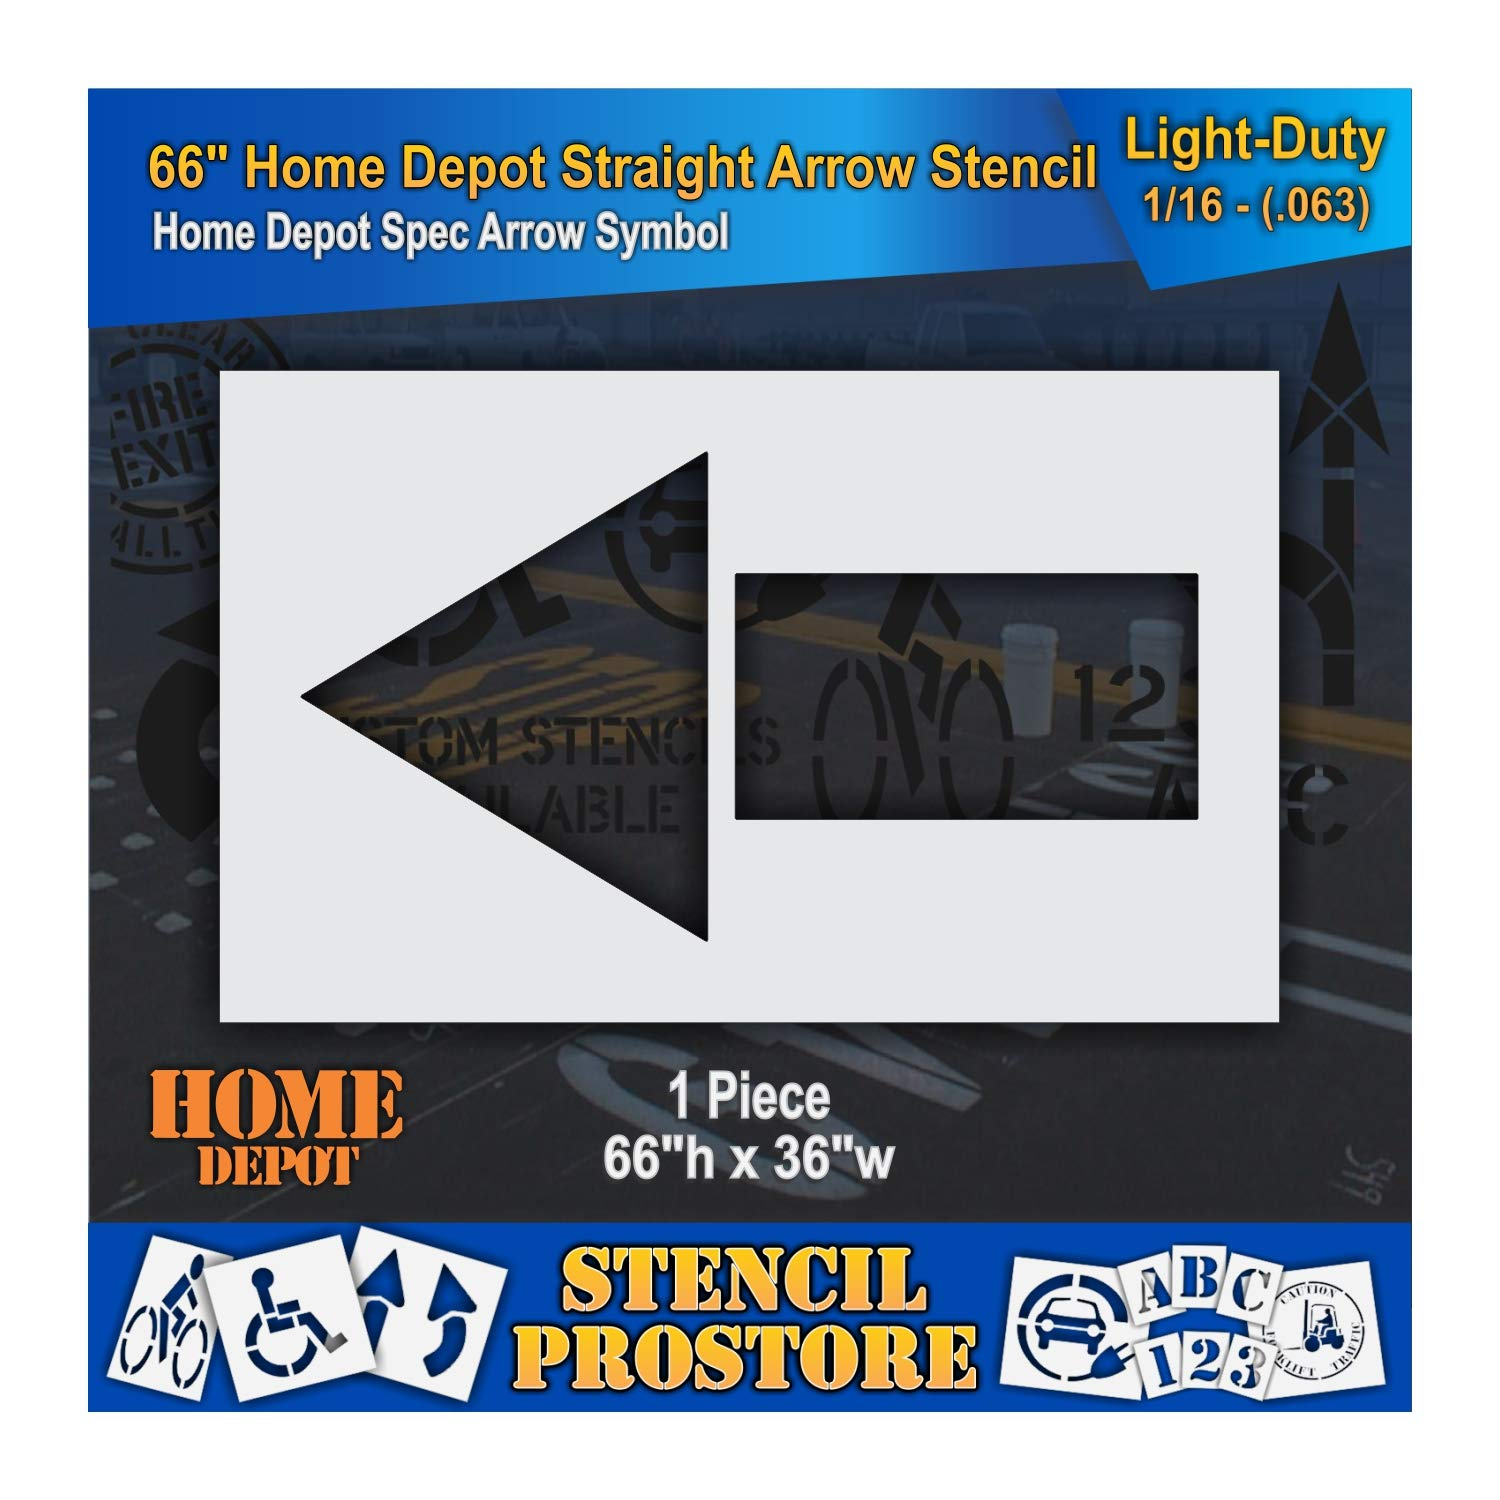 Retail Stencils - Home Depot - 66 in Straight Arrow Stencil - 66'' x 36'' x 1/16'' (63 mil) - Light-Duty